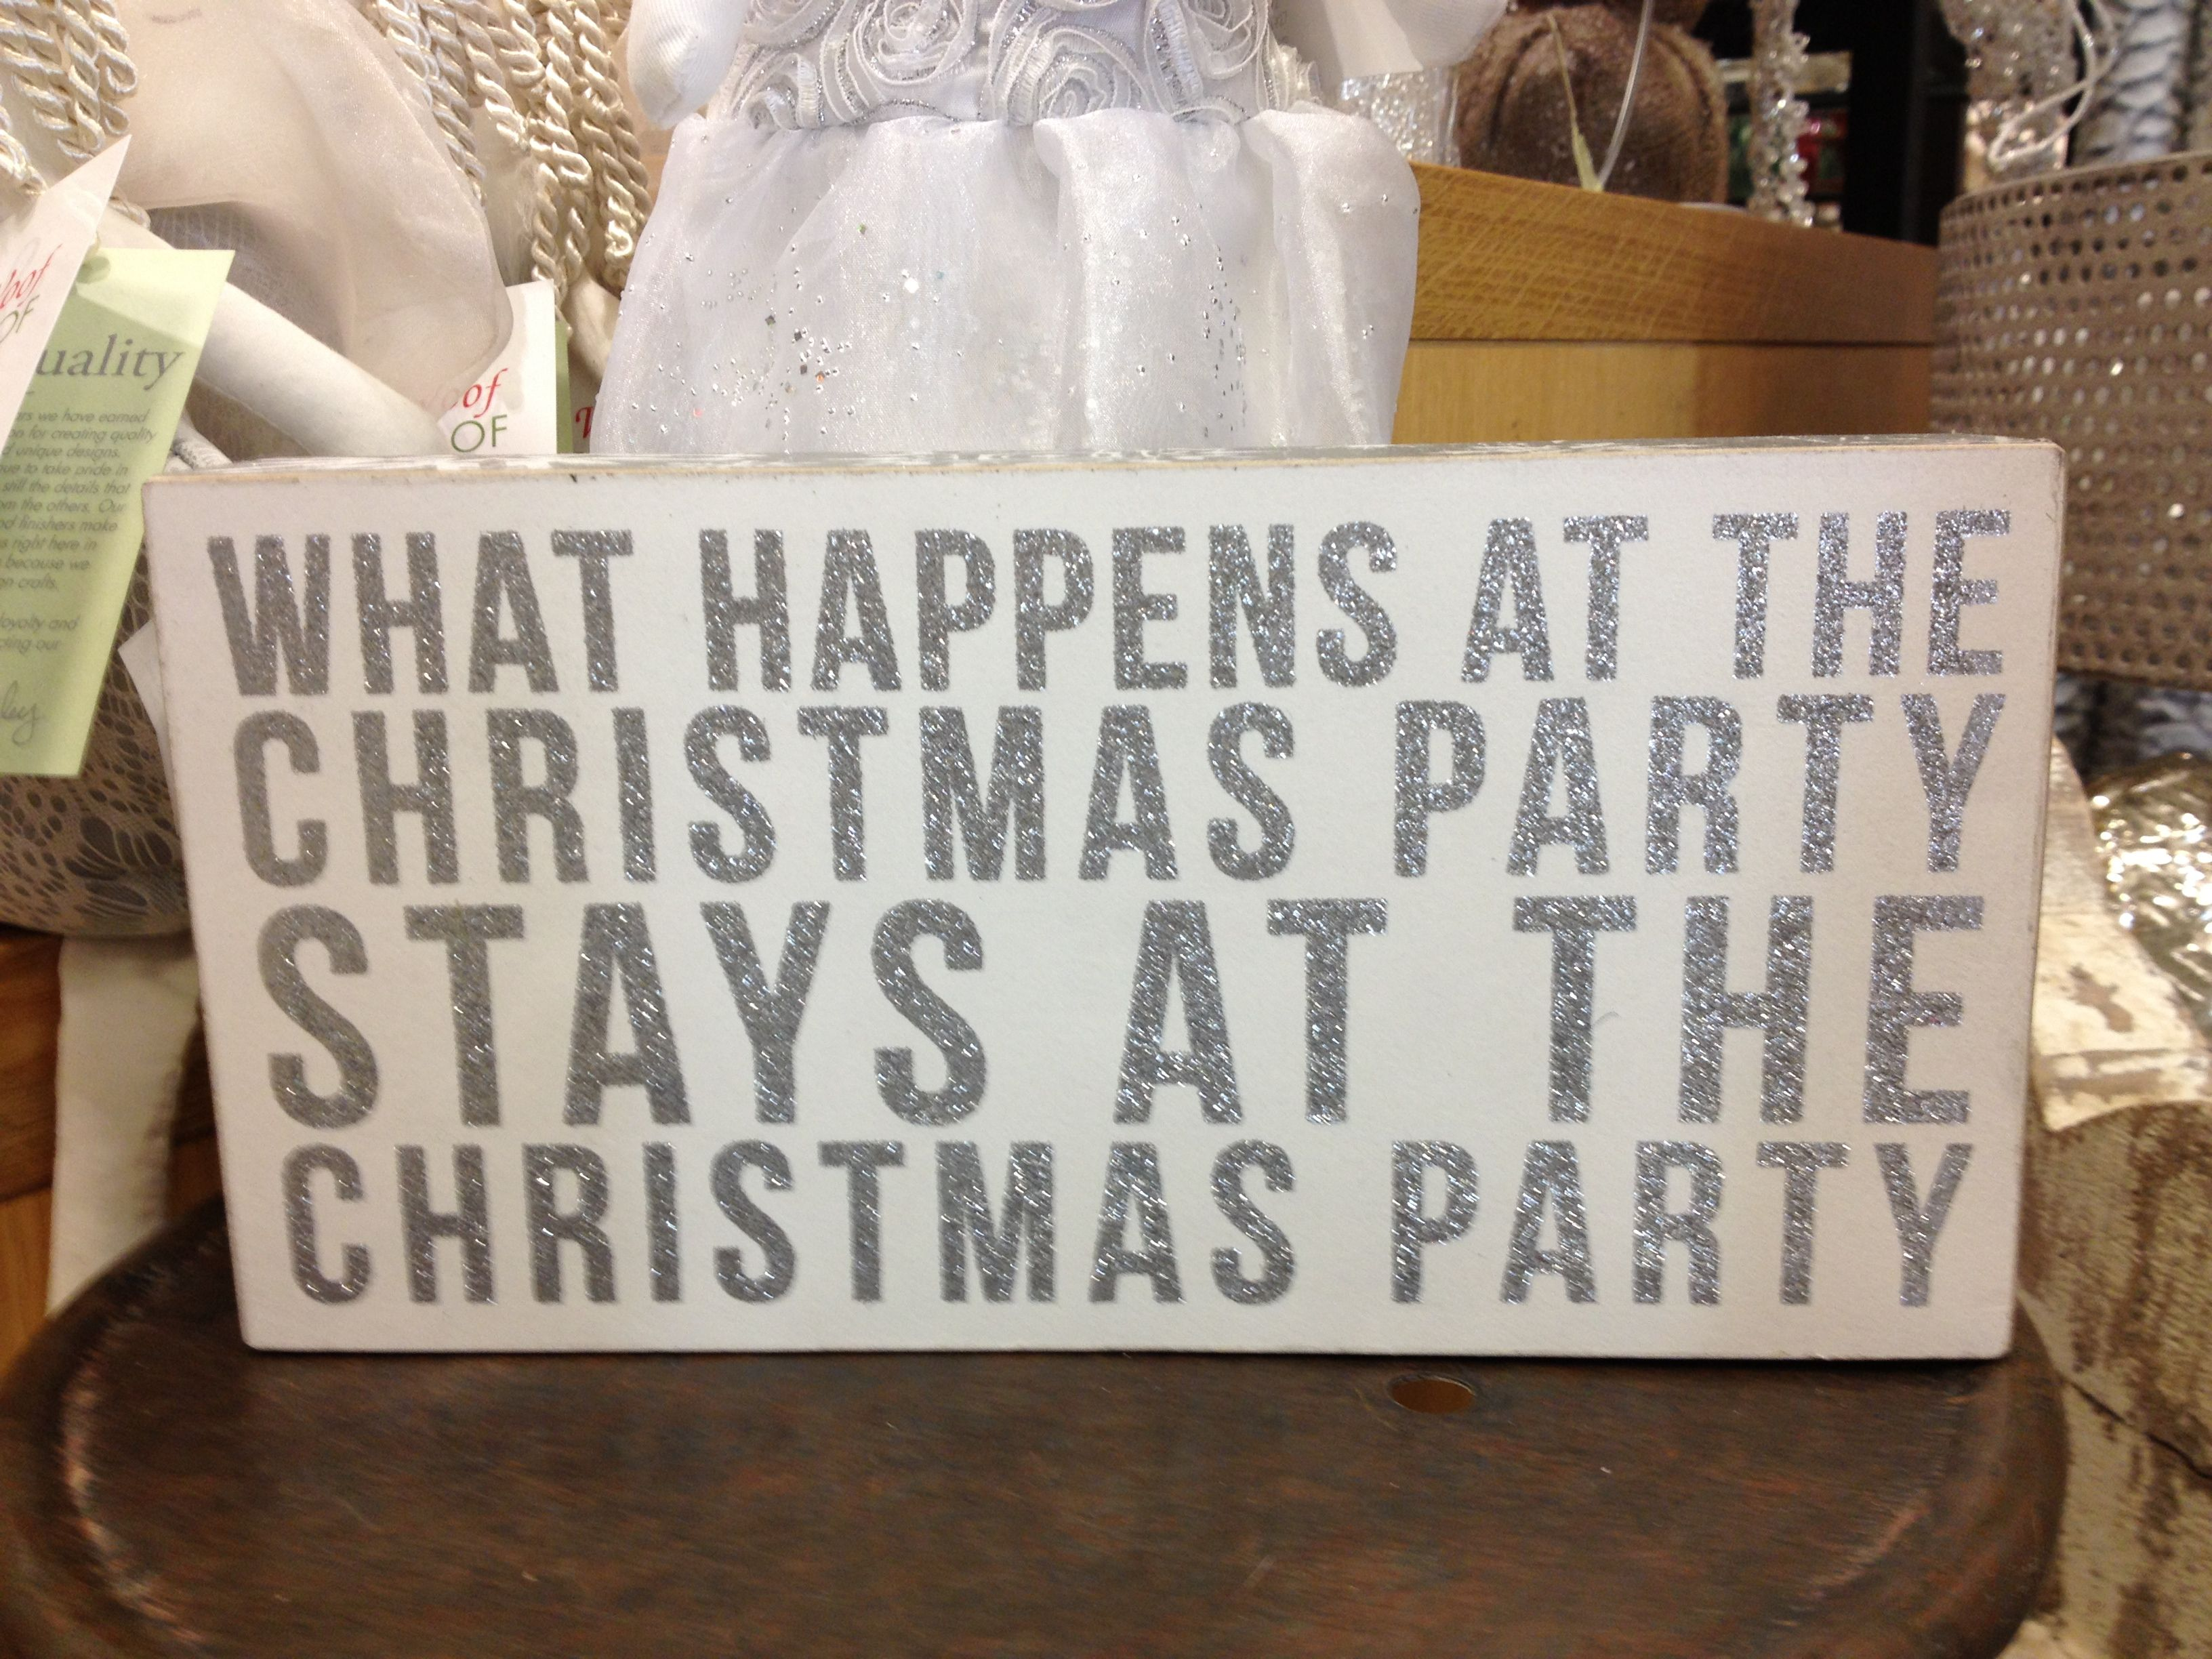 Awesome Christmas Party Ideas Part - 34: Ugly Sweater Party Will Be Awesome!